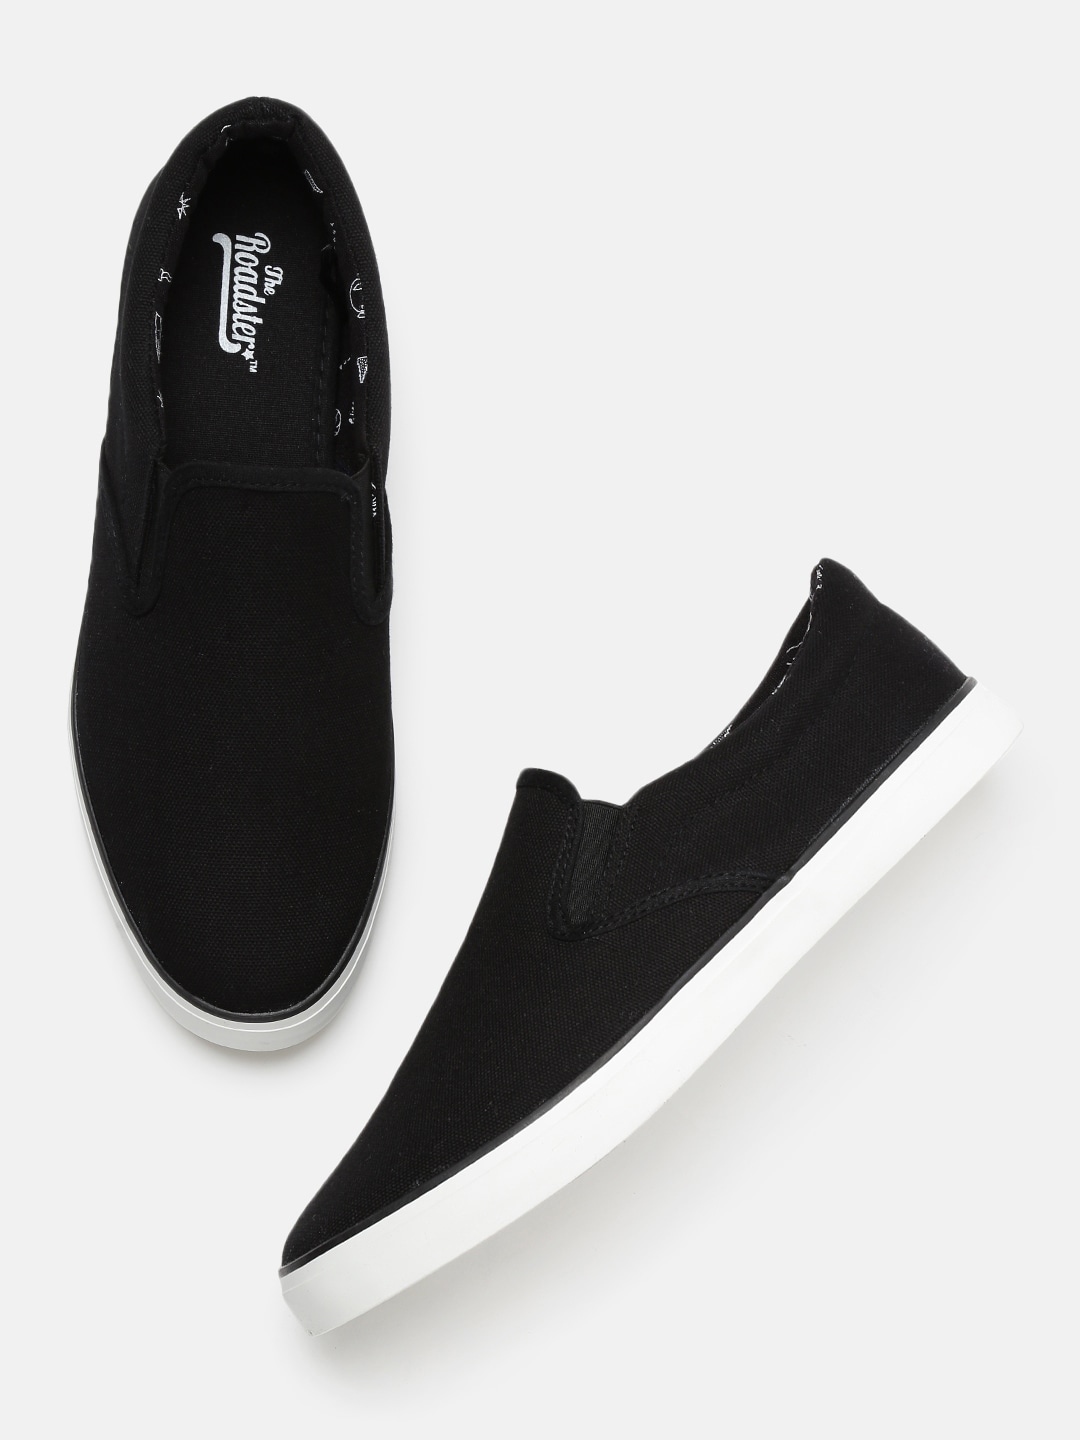 8cdfcefcb3a0b Roadster Men Black Slip-On Sneakers